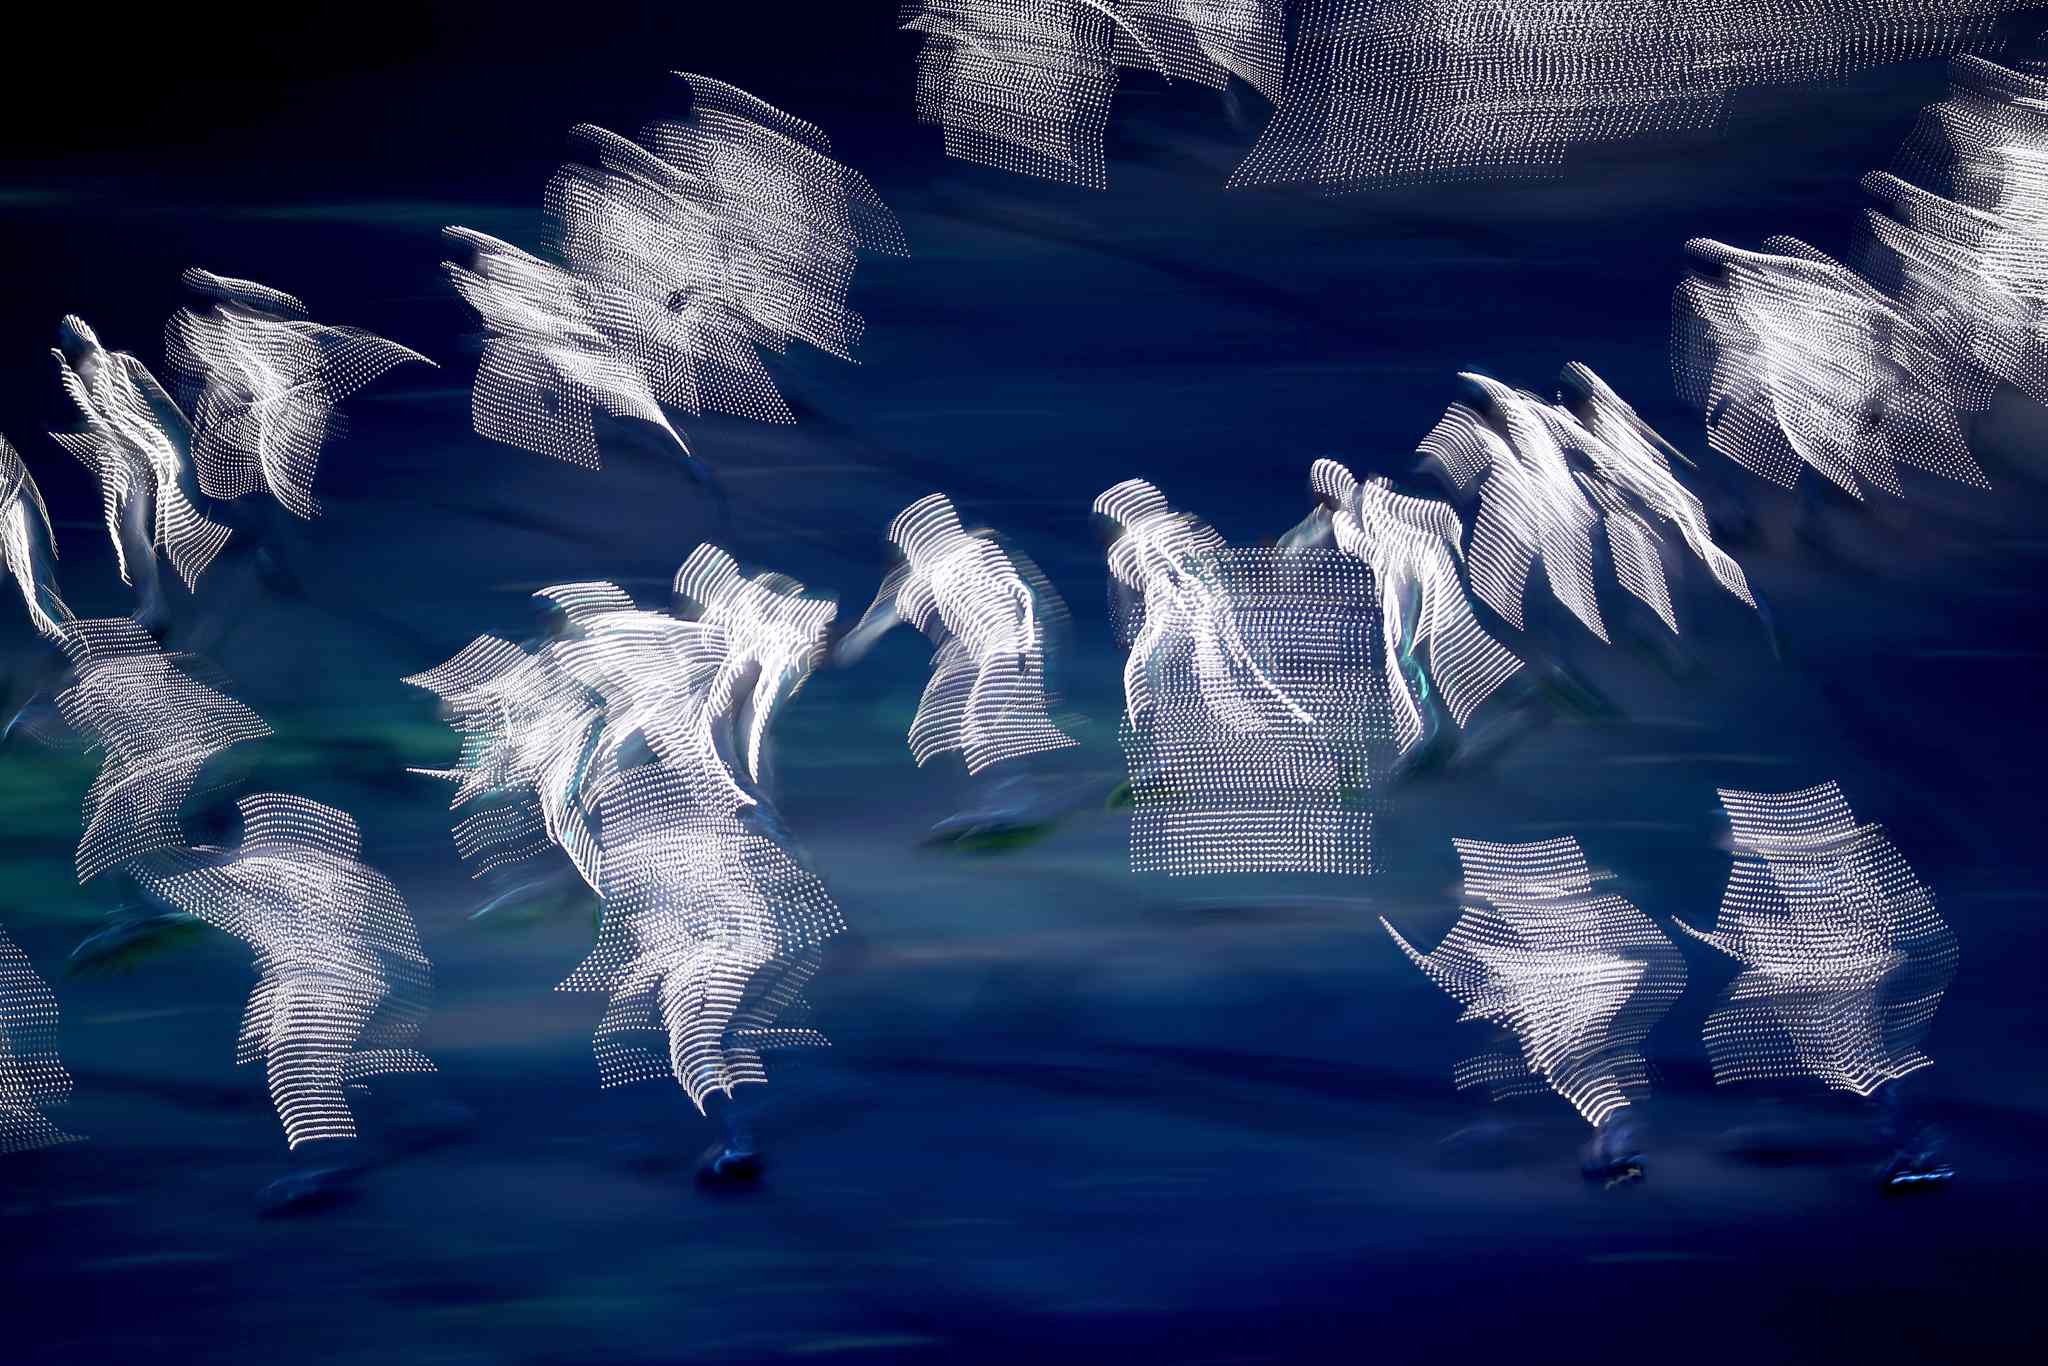 Illuminated dancers perform on roller skates during the Opening Ceremony for the Winter Olympics at Fisht Olympic Stadium in Sochi, Russia, Friday, Feb. 7, 2014. (Brian Cassella/Chicago Tribune/MCT)